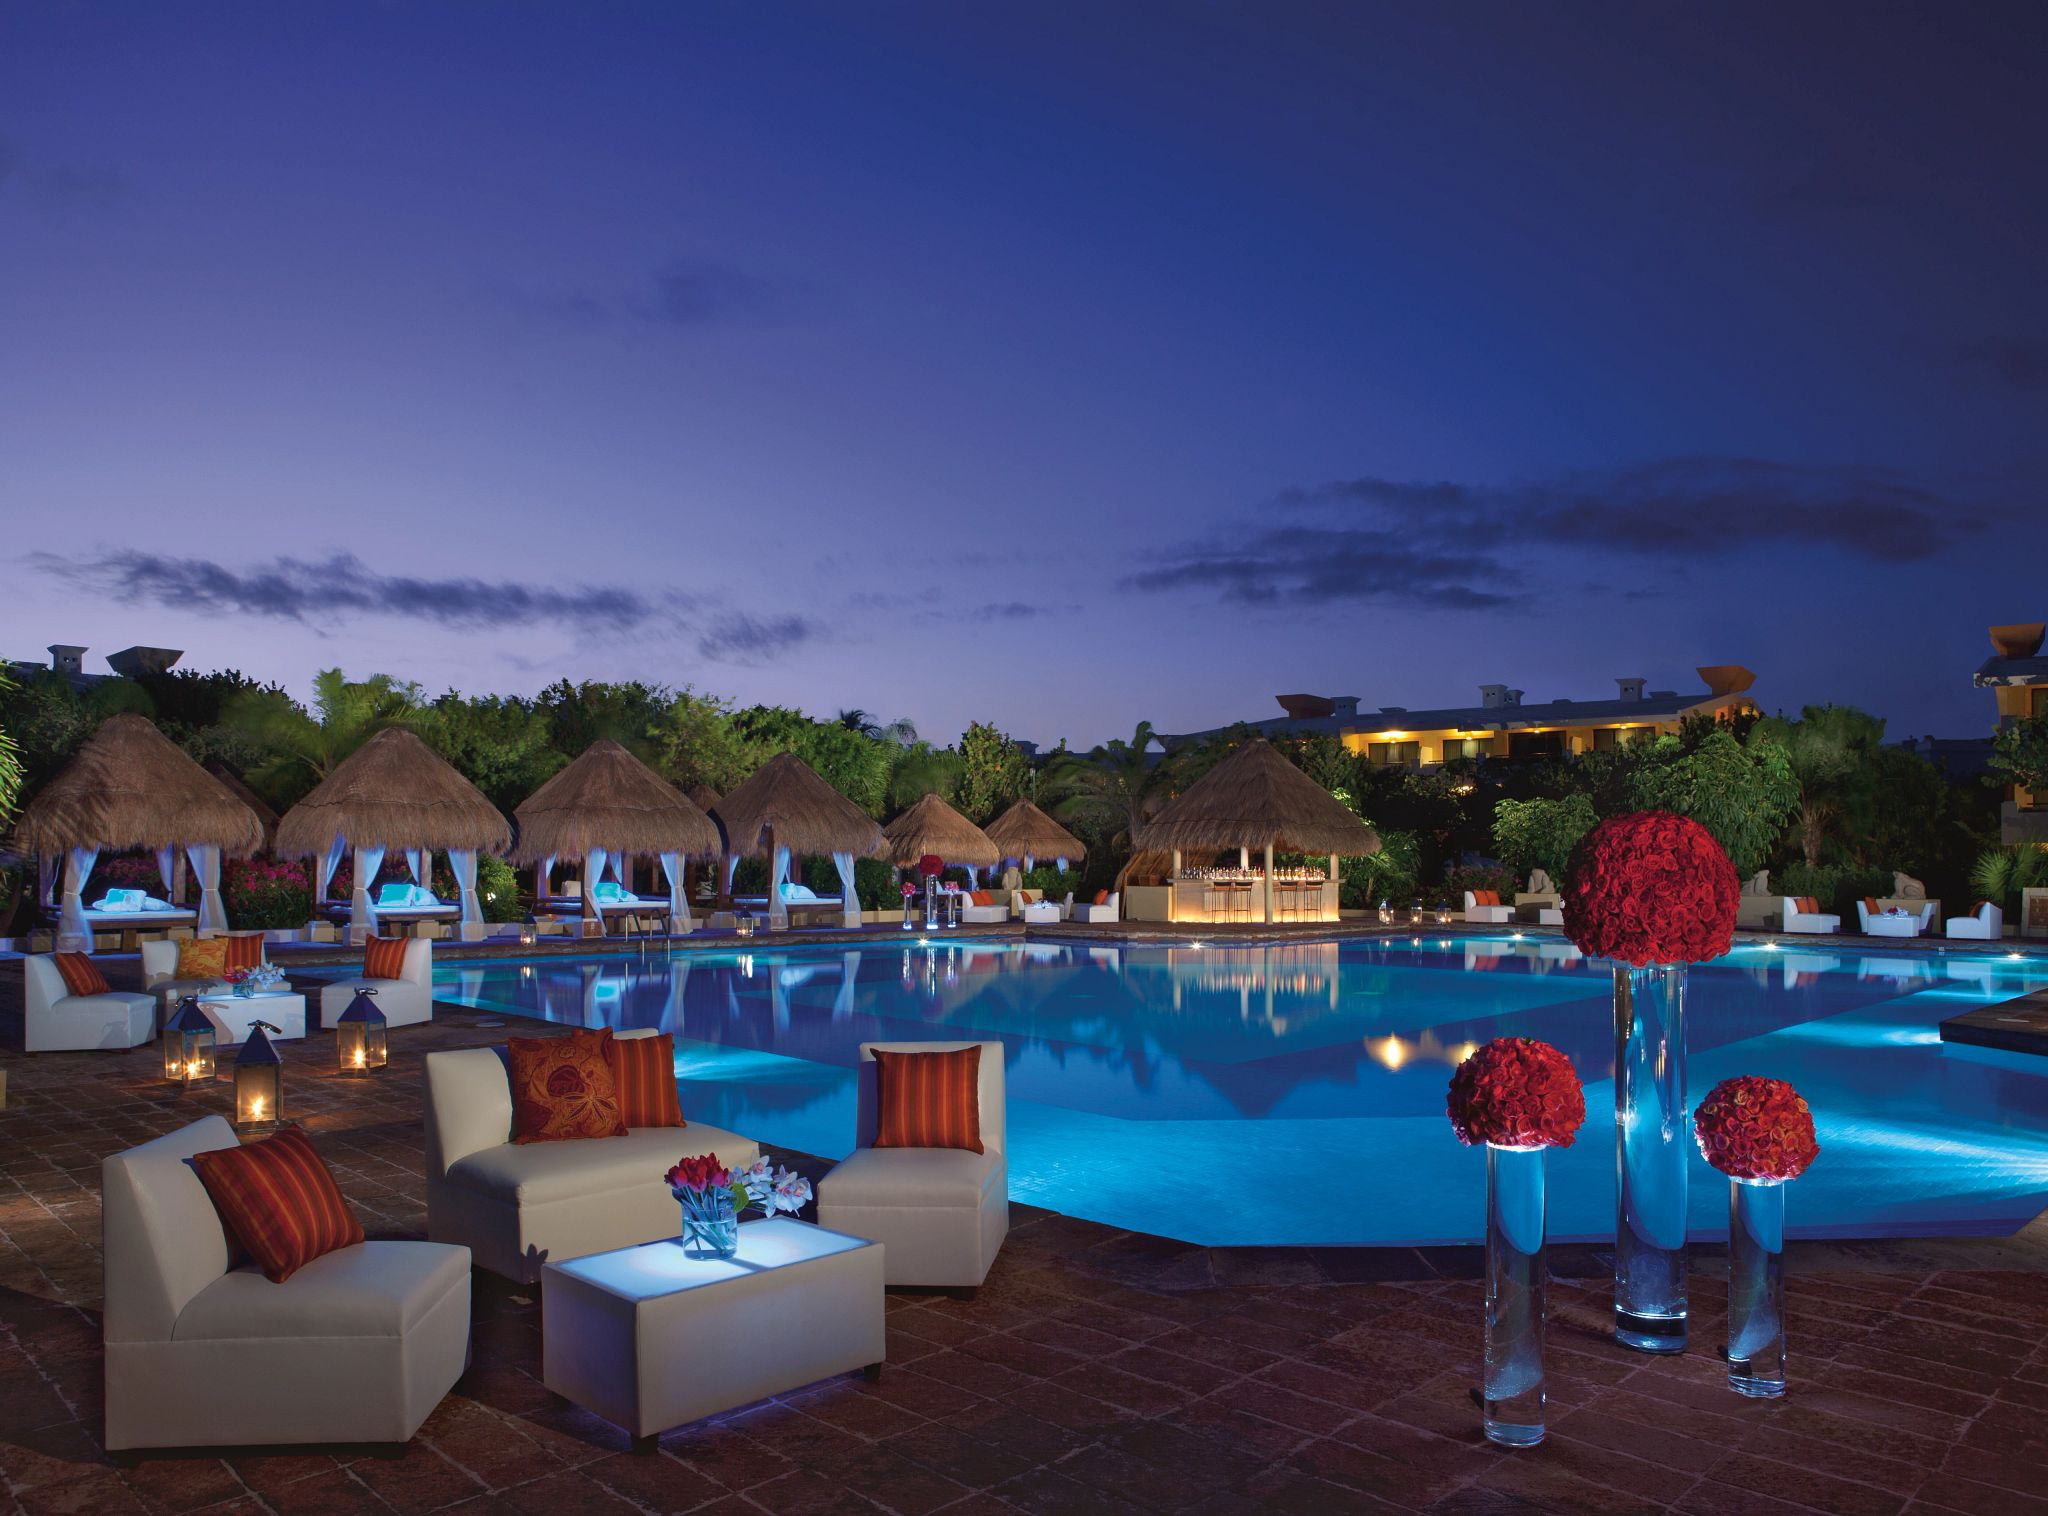 event set up by a swimming pool at night